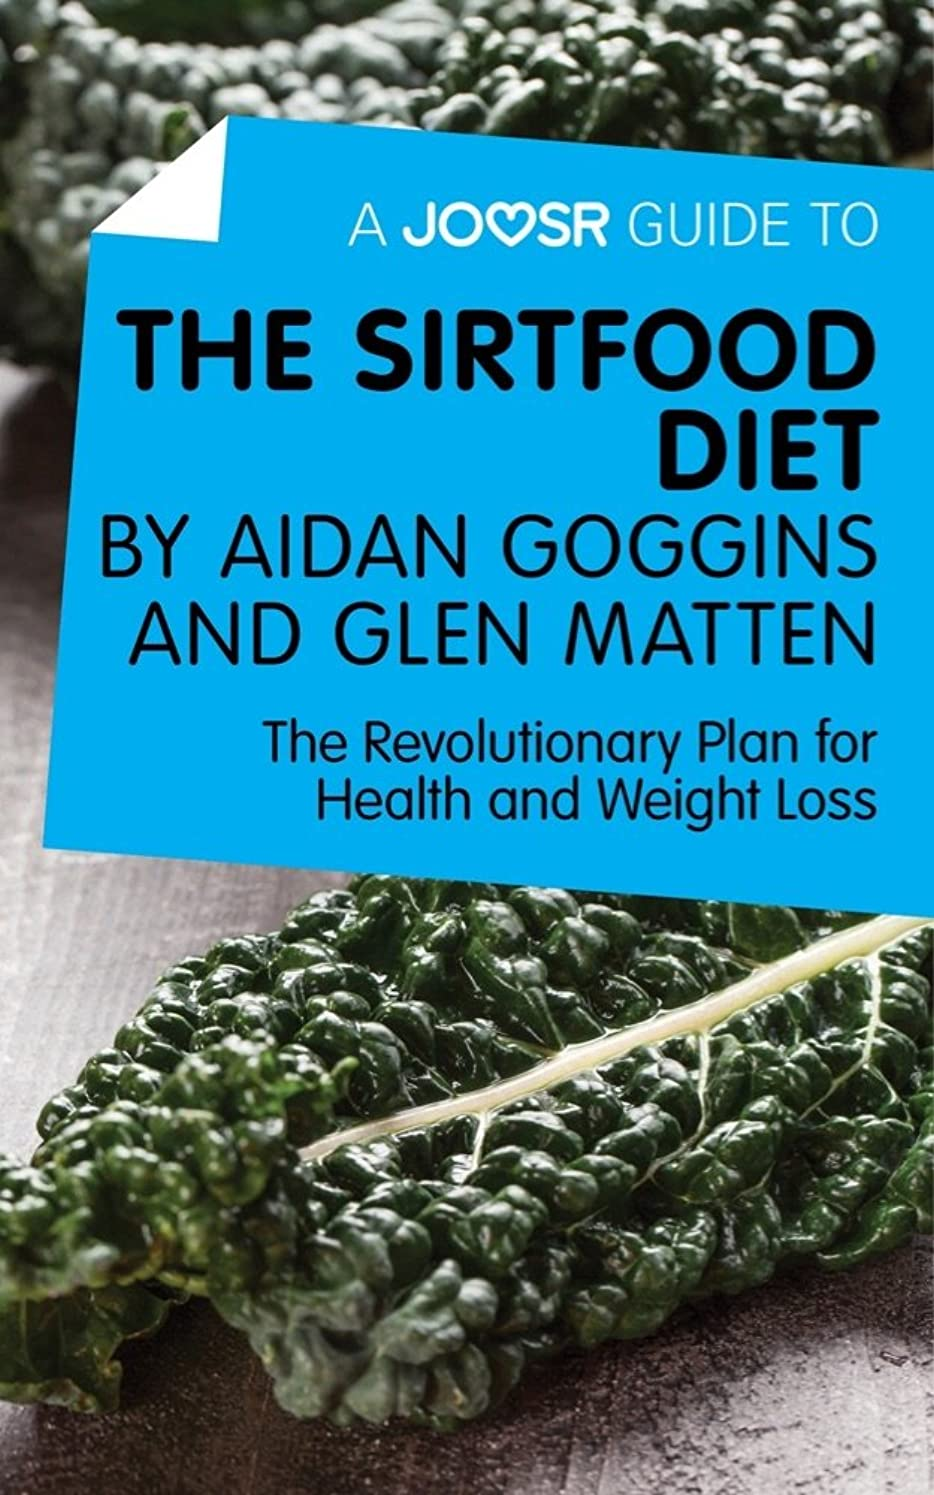 A Joosr Guide to... The Sirtfood Diet by Aidan Goggins and Glen Matten: The Revolutionary Plan for Health and Weight Loss (English Edition)